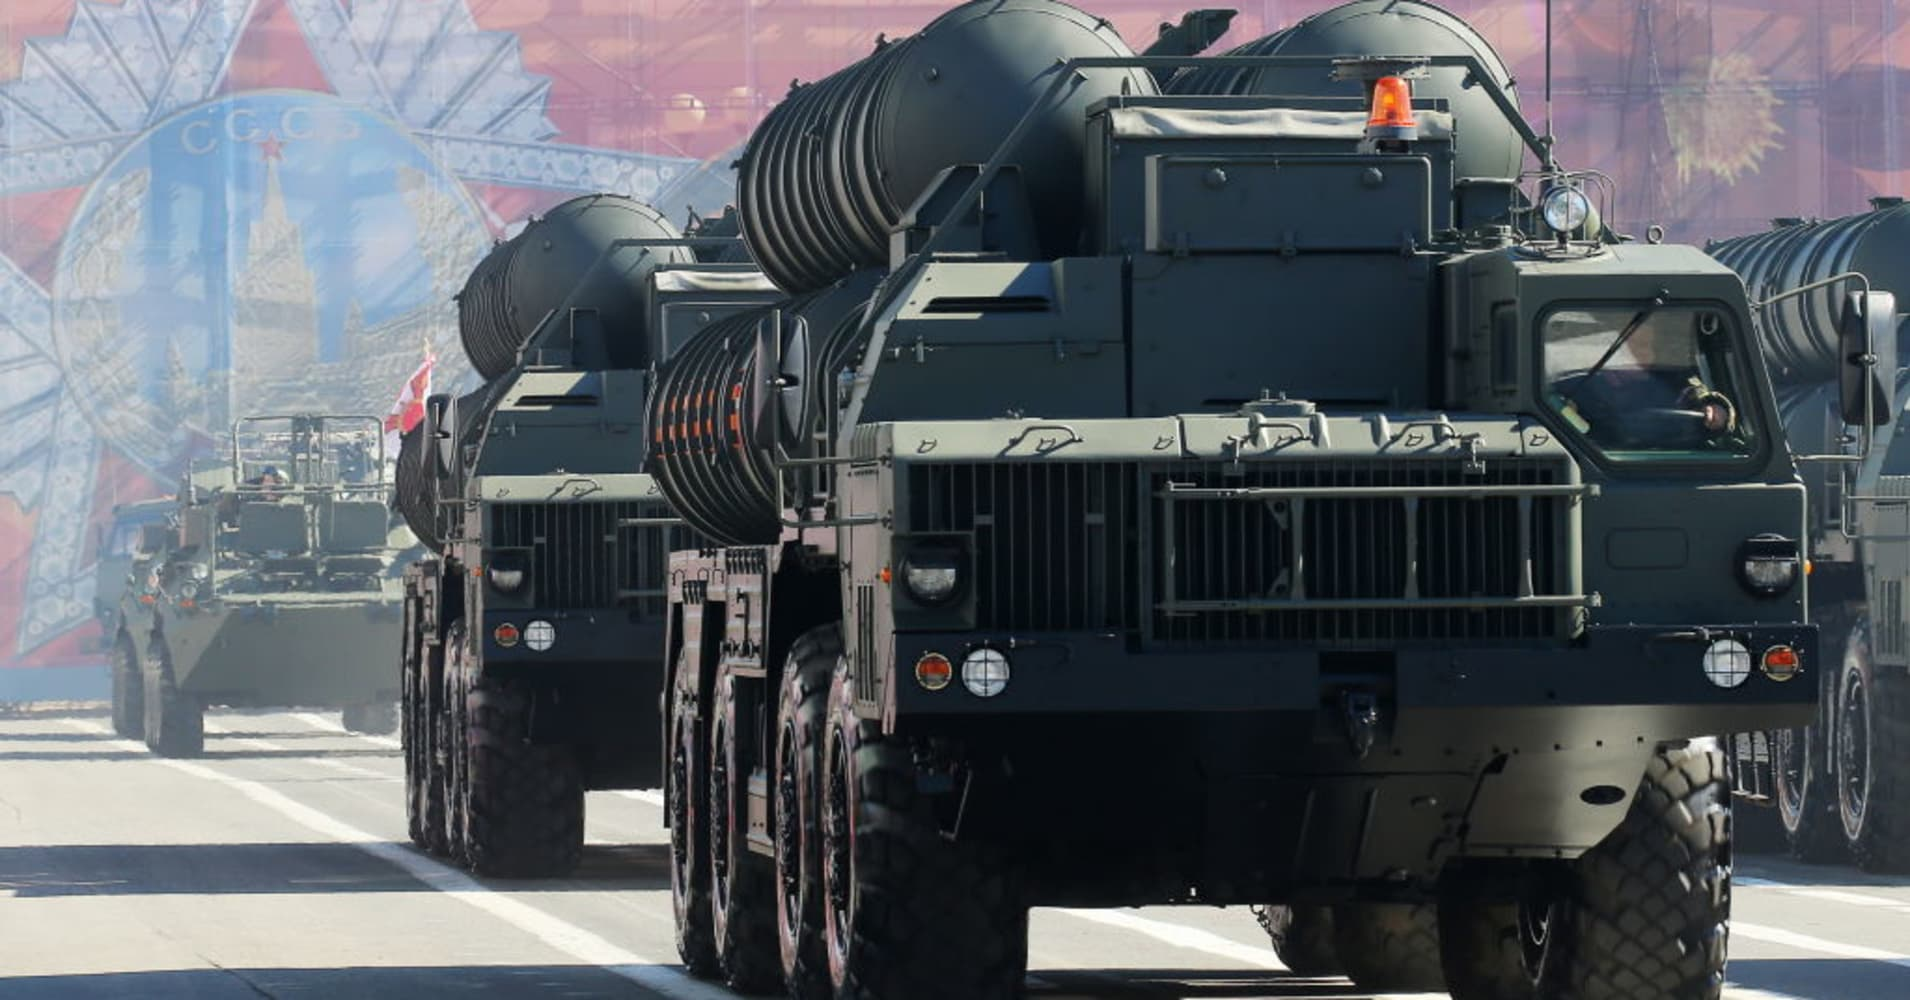 Countries interested in buying Russian missile system despite US sanction threats